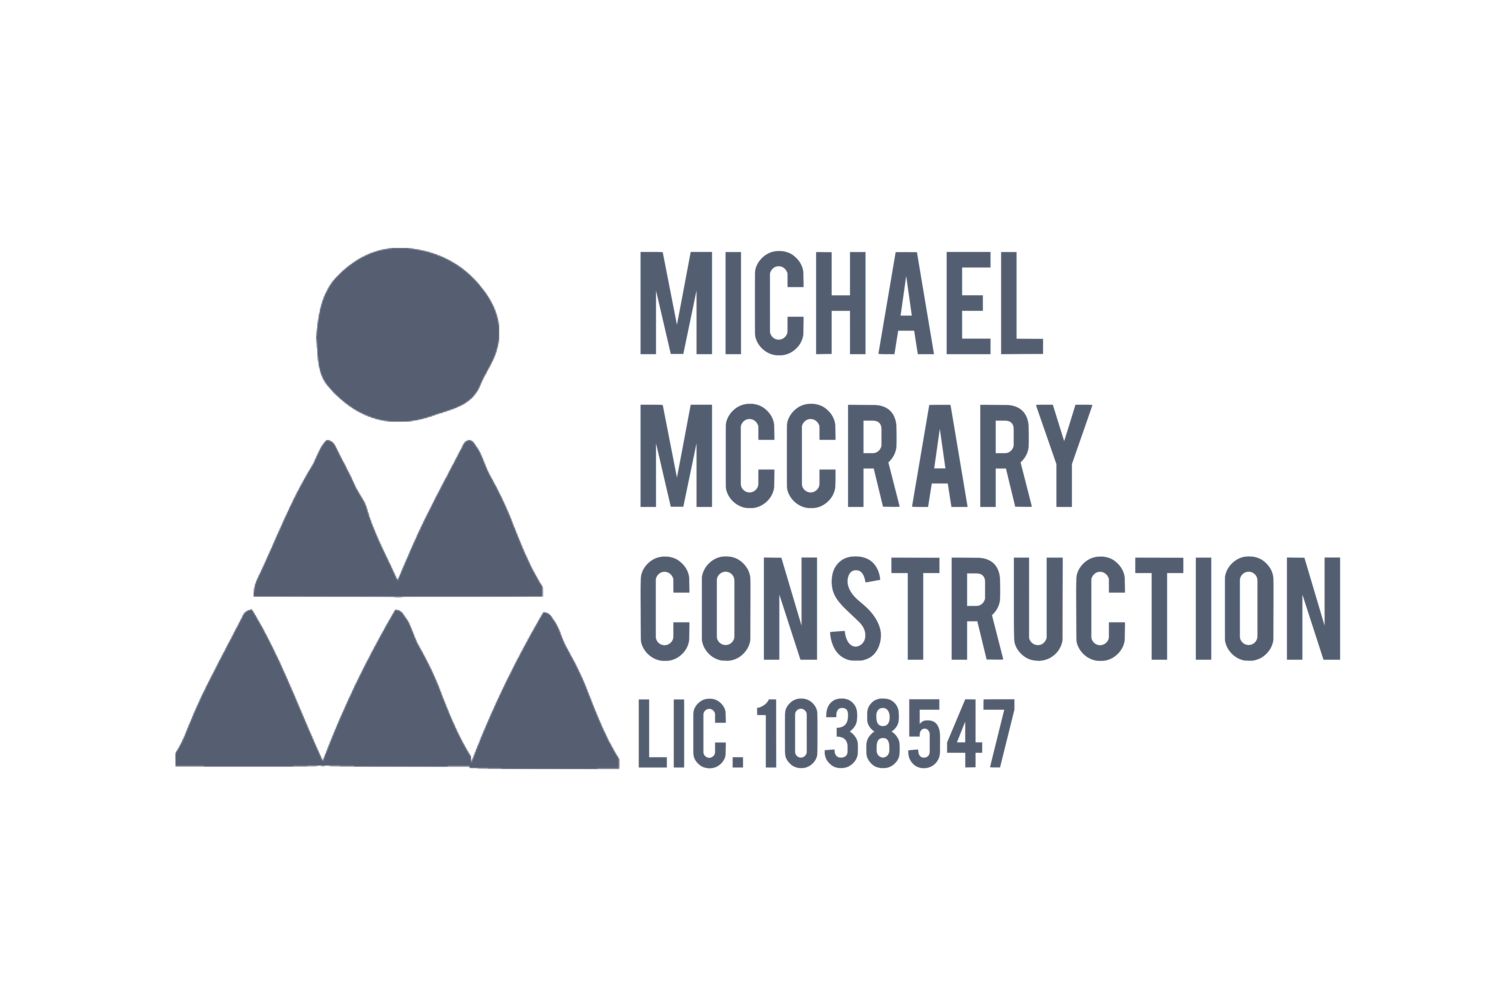 MICHAEL MCCRARY CONSTRUCTION